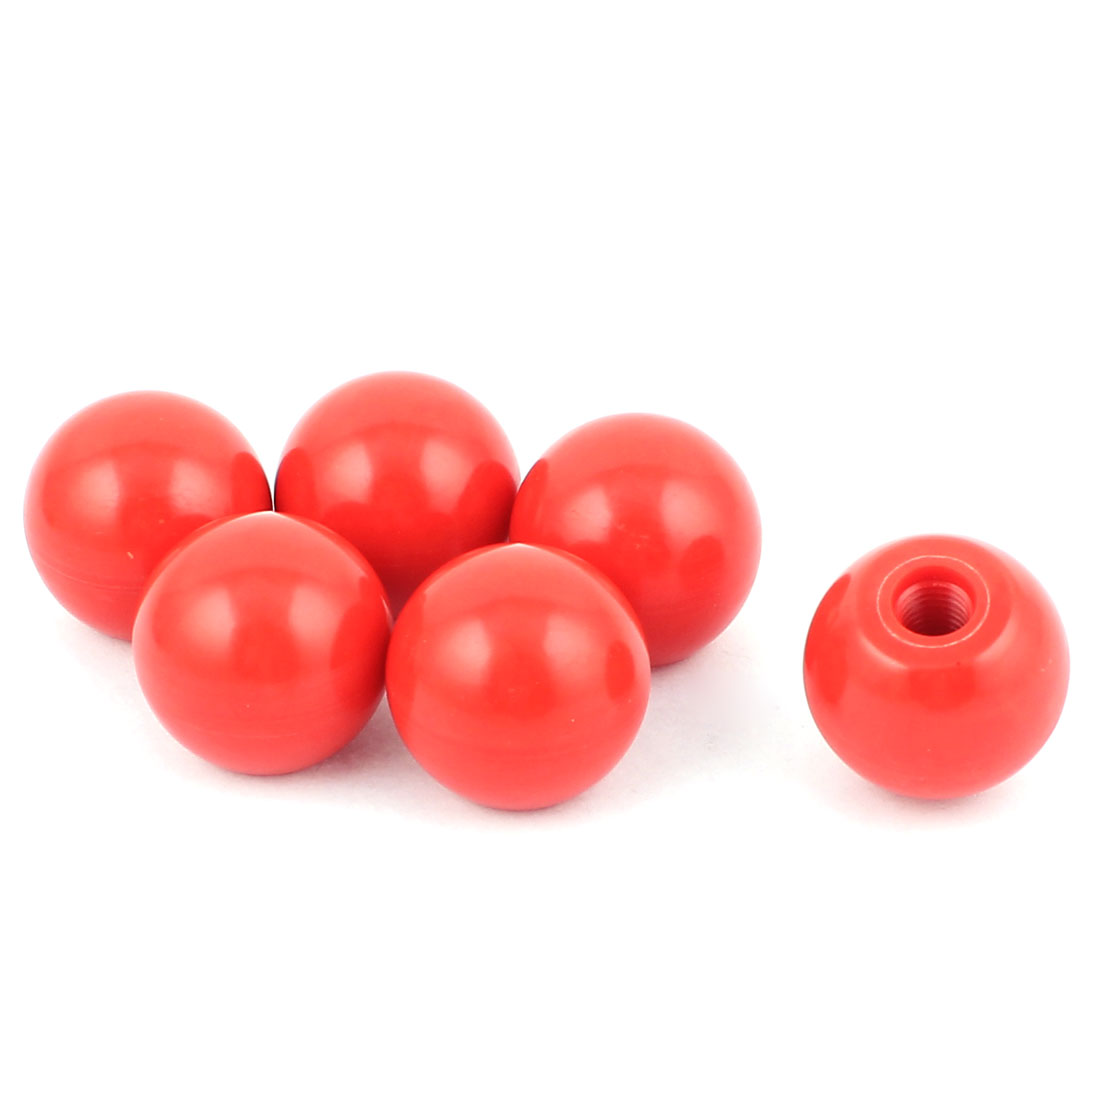 "6Pcs 8mm/0.3"" OD 35mm/1.4"" ID Duroplastic Solid Handling Ball Knob Red"